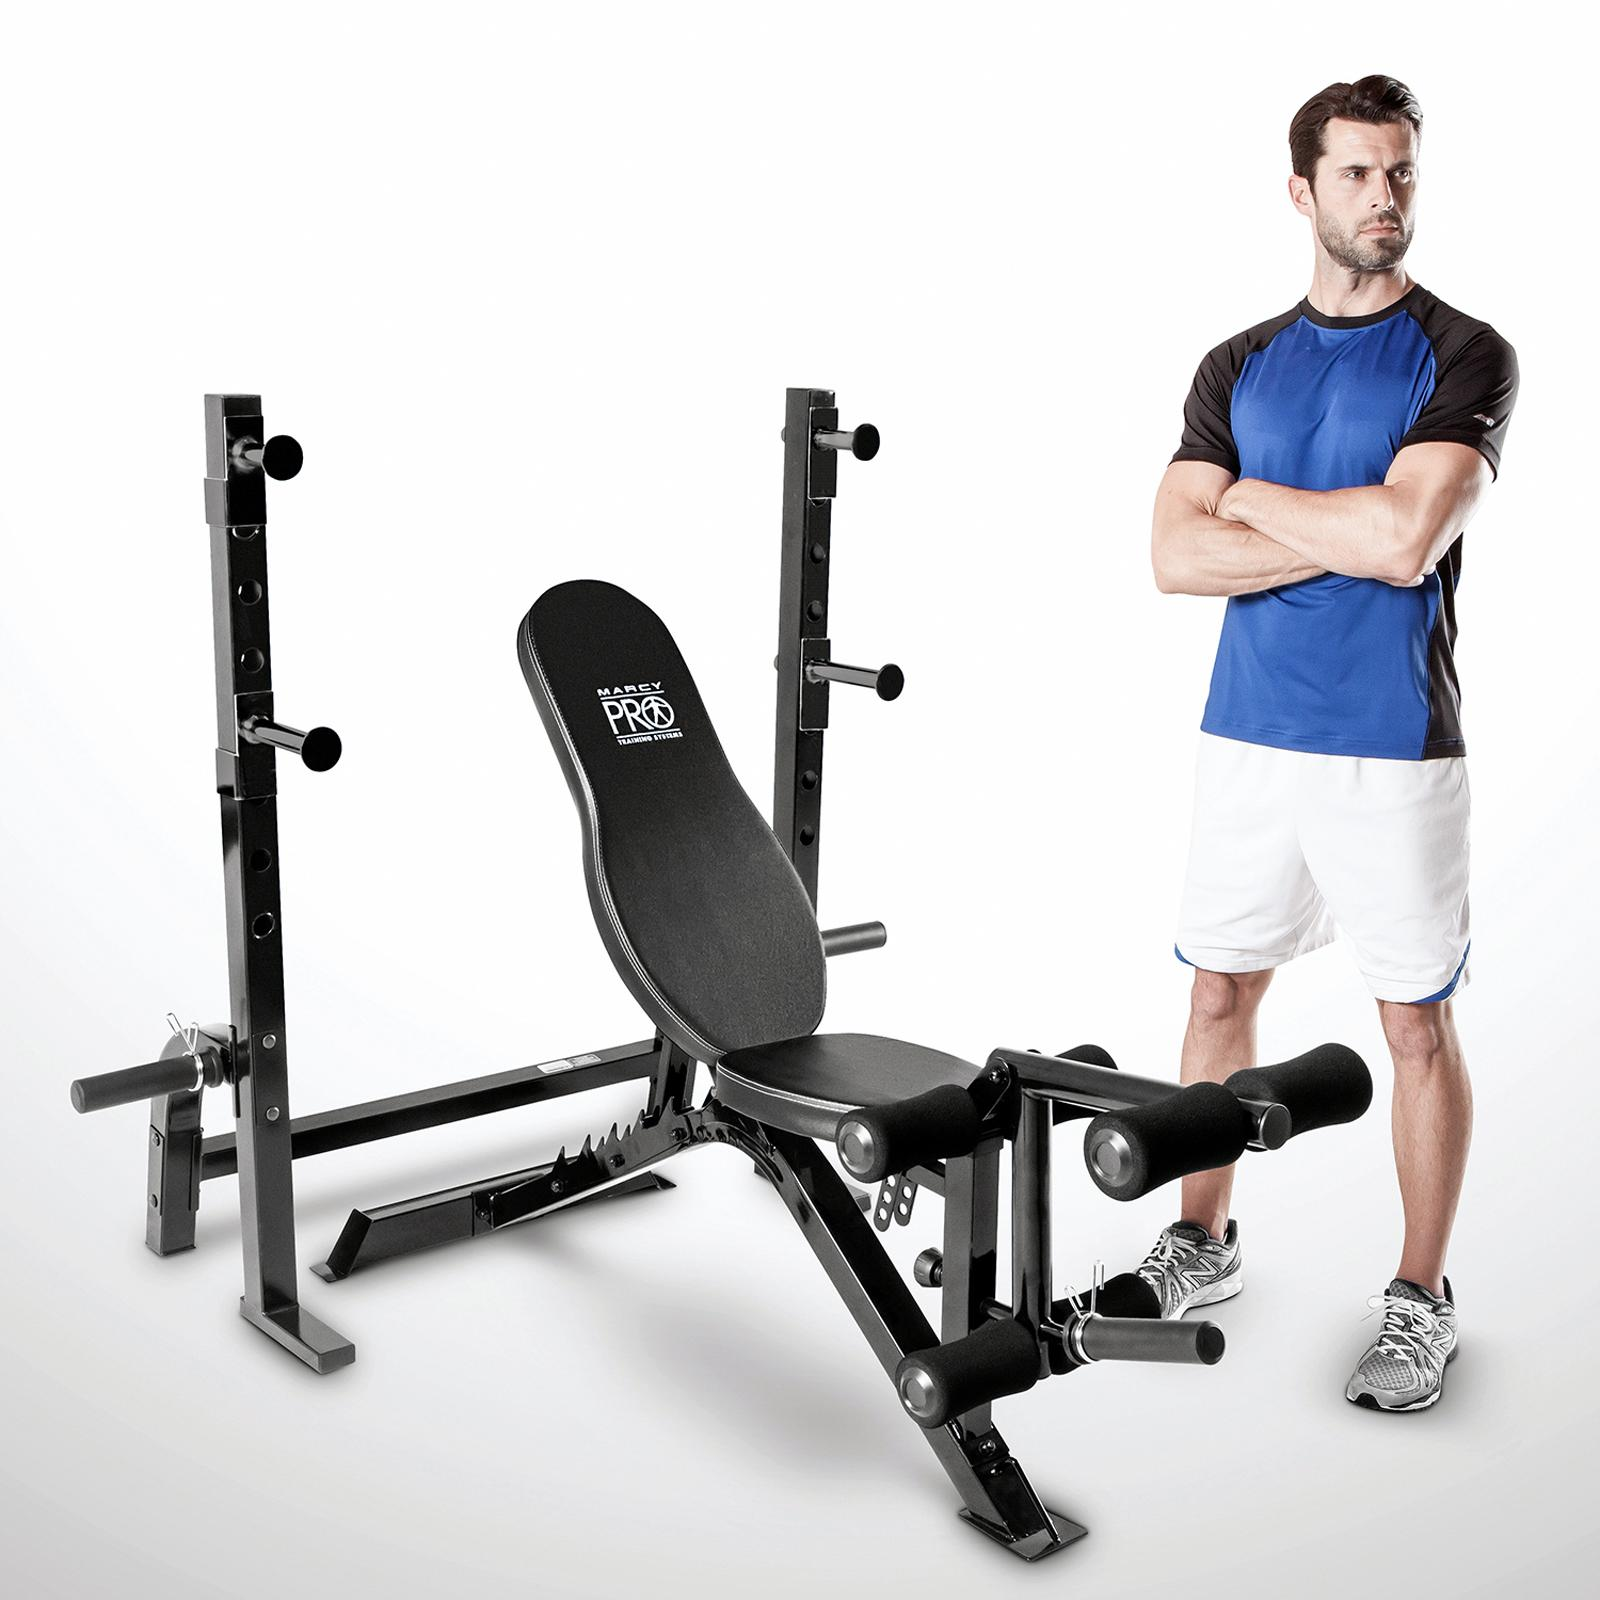 Marcy Olympic Weight Bench - PM-70210